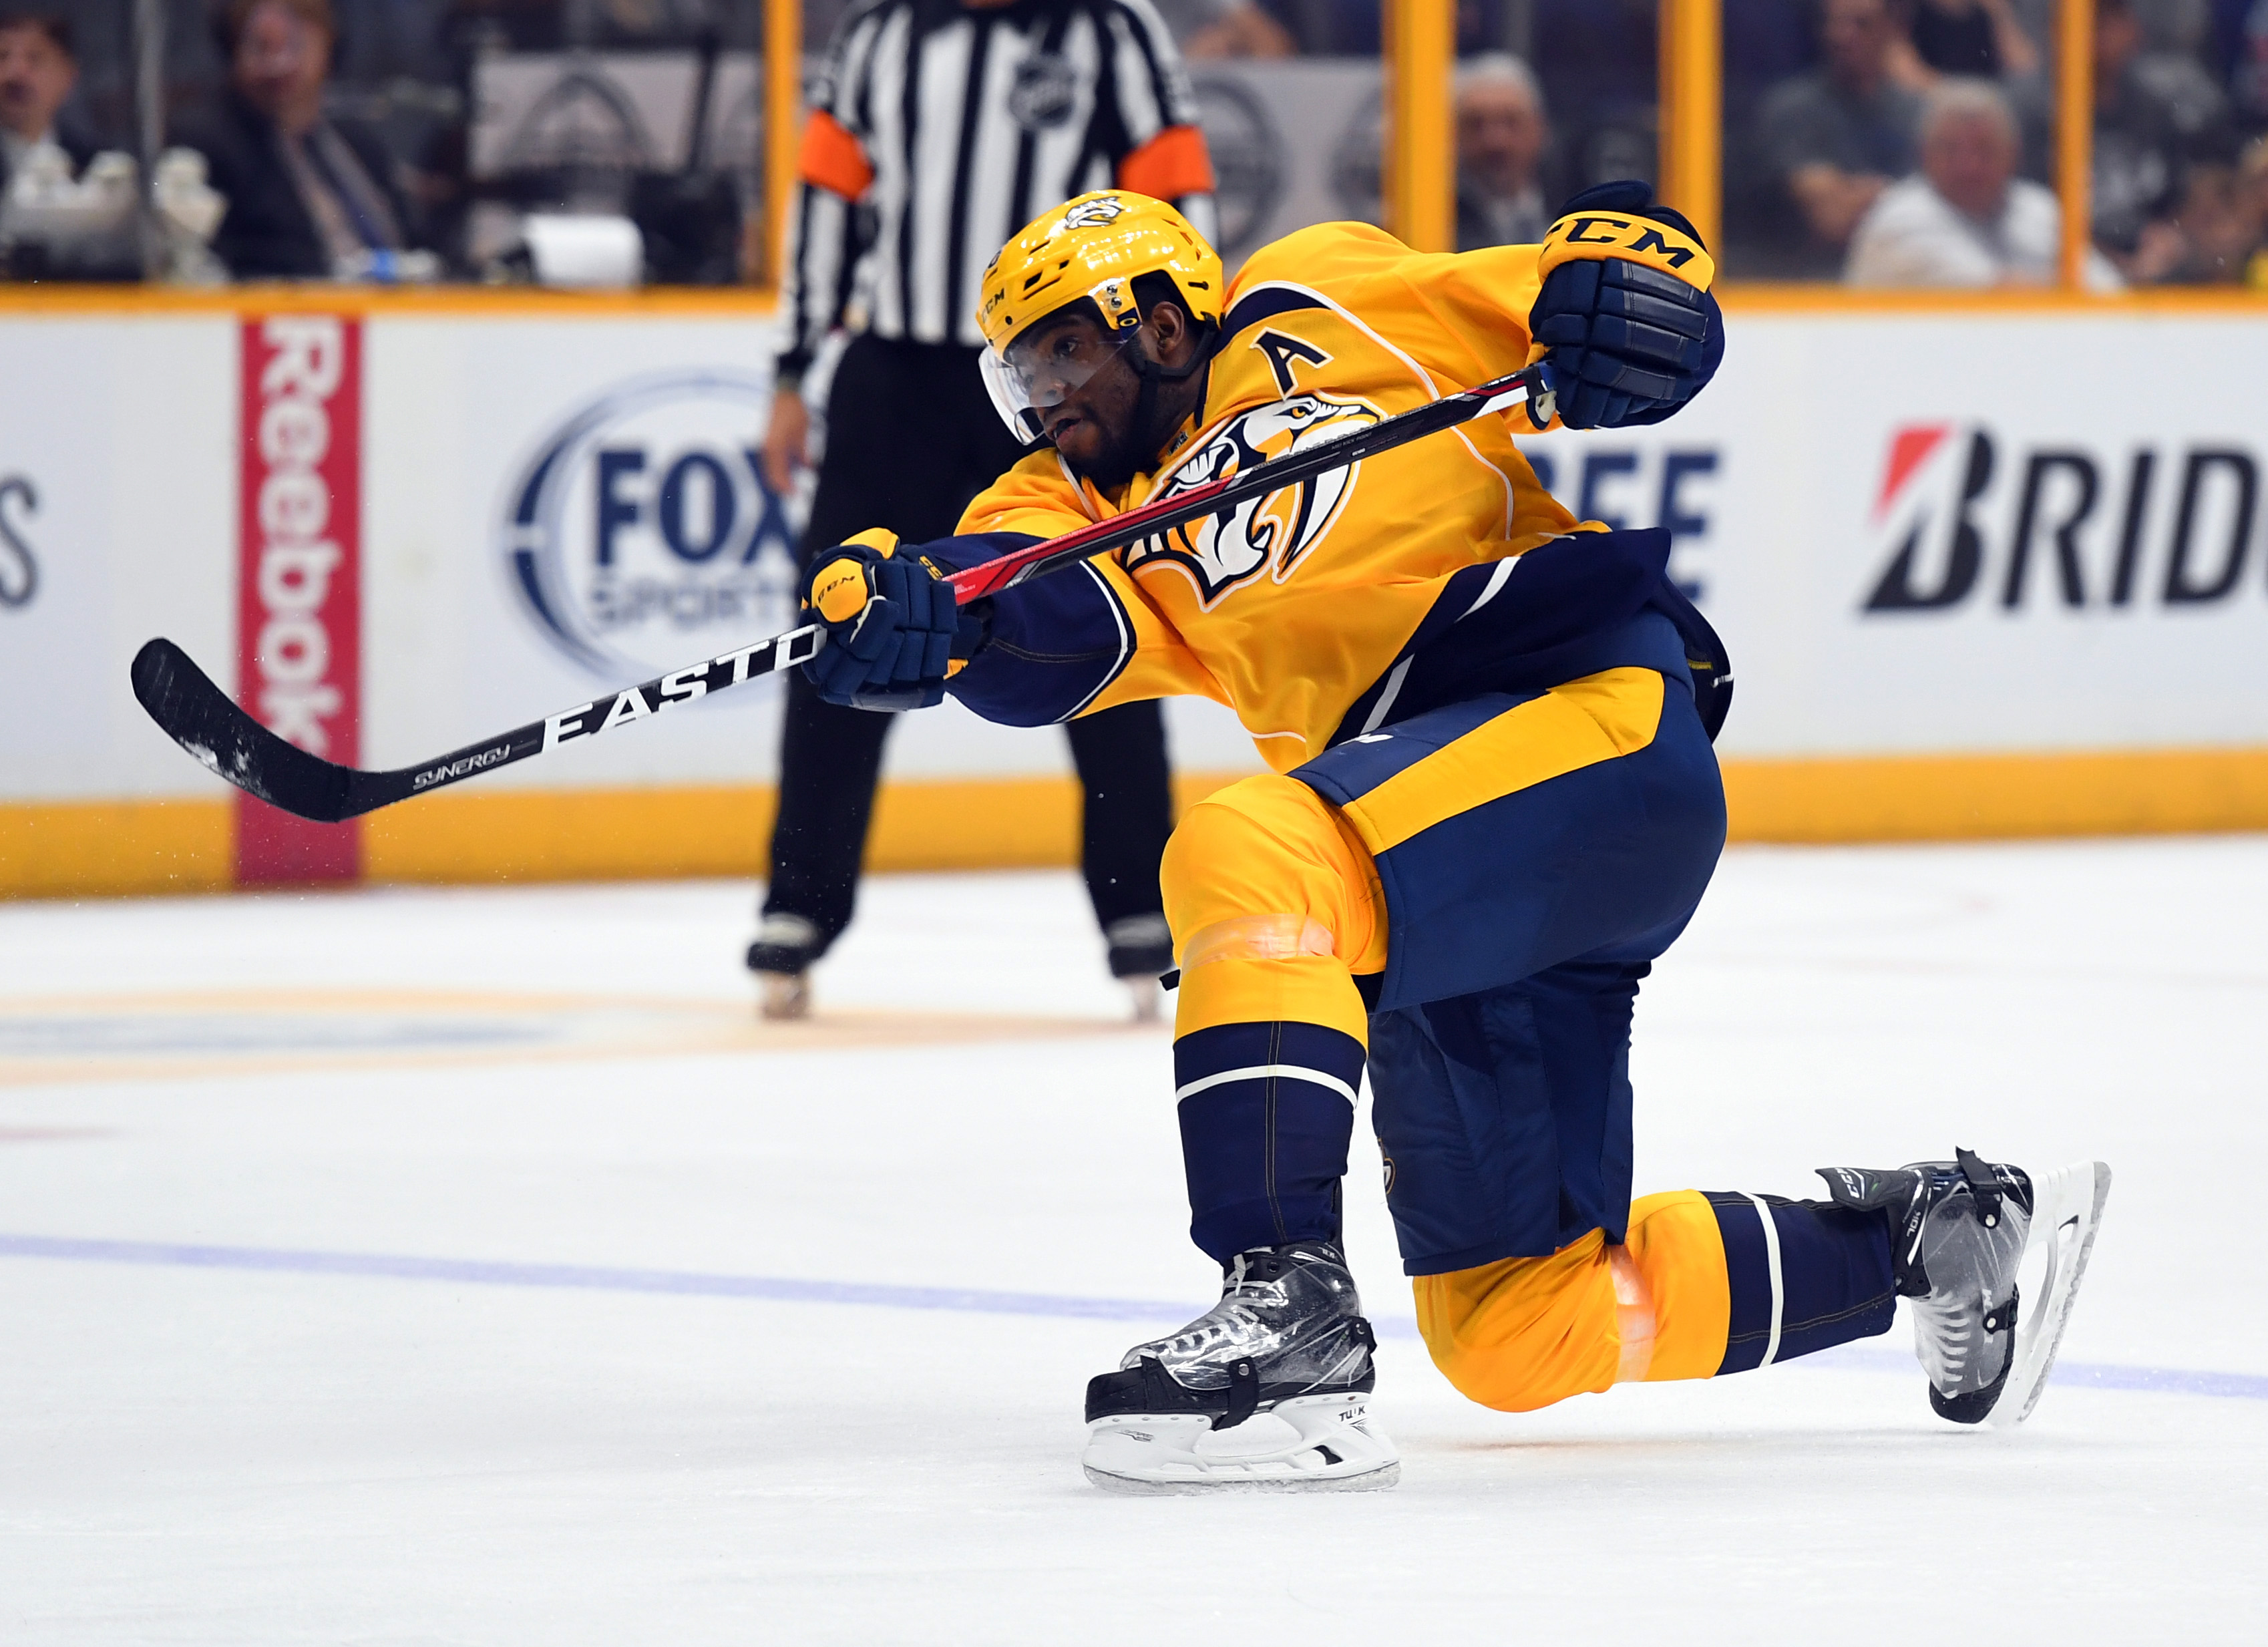 Watch P.K. Subban in all his glory from your mobile device, Roku, Apple TV or more!